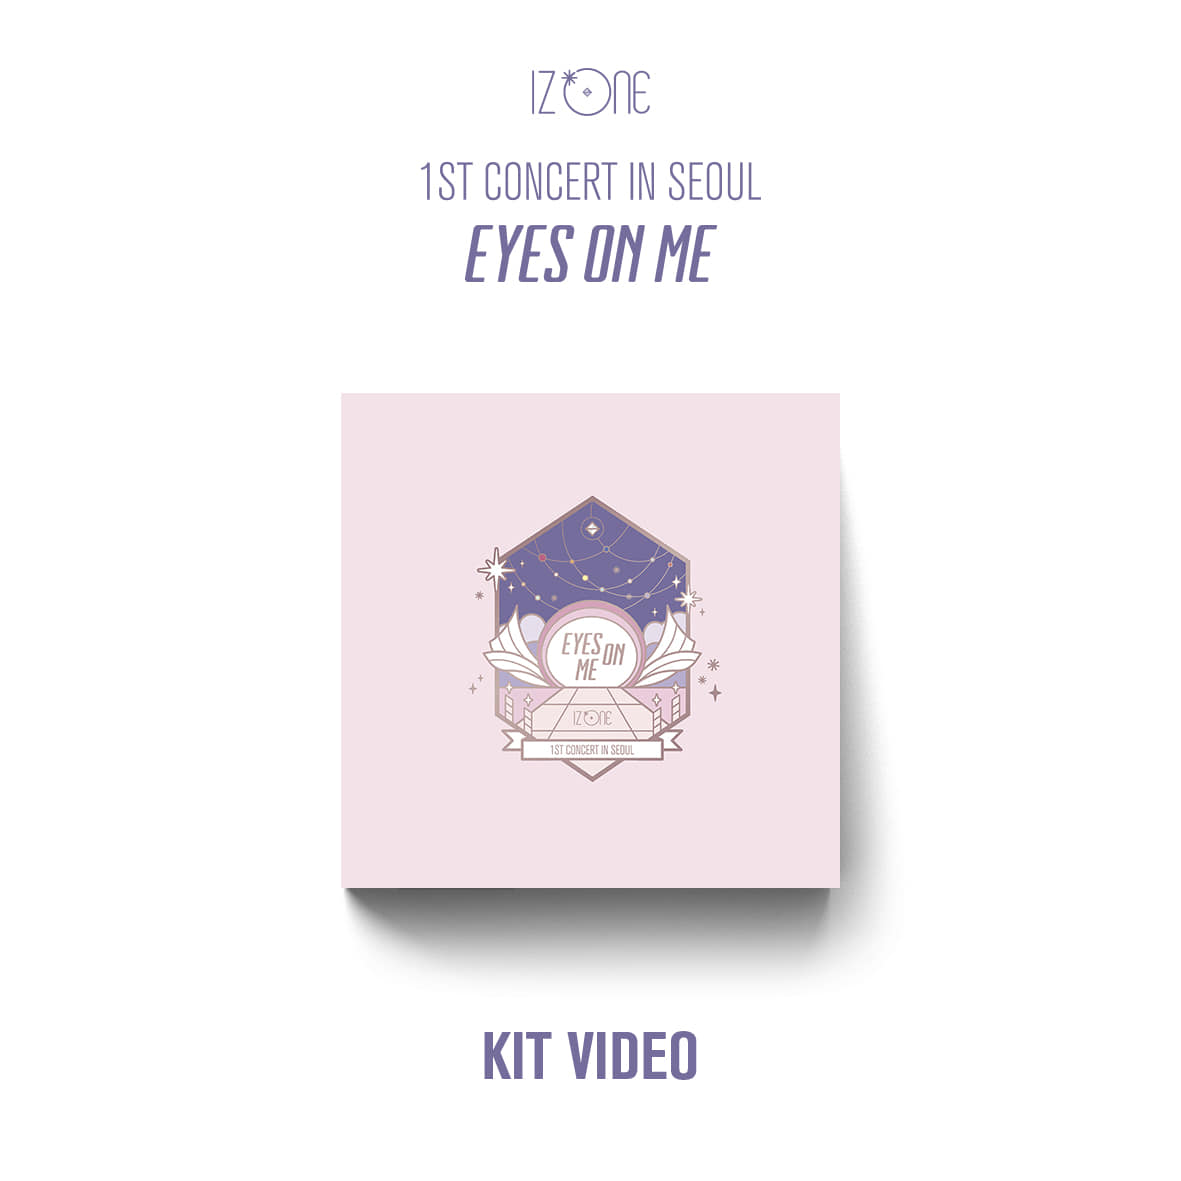 아이즈원(IZ*ONE) - 1ST CONCERT IN SEOUL [EYES ON ME] (KIT VIDEO)